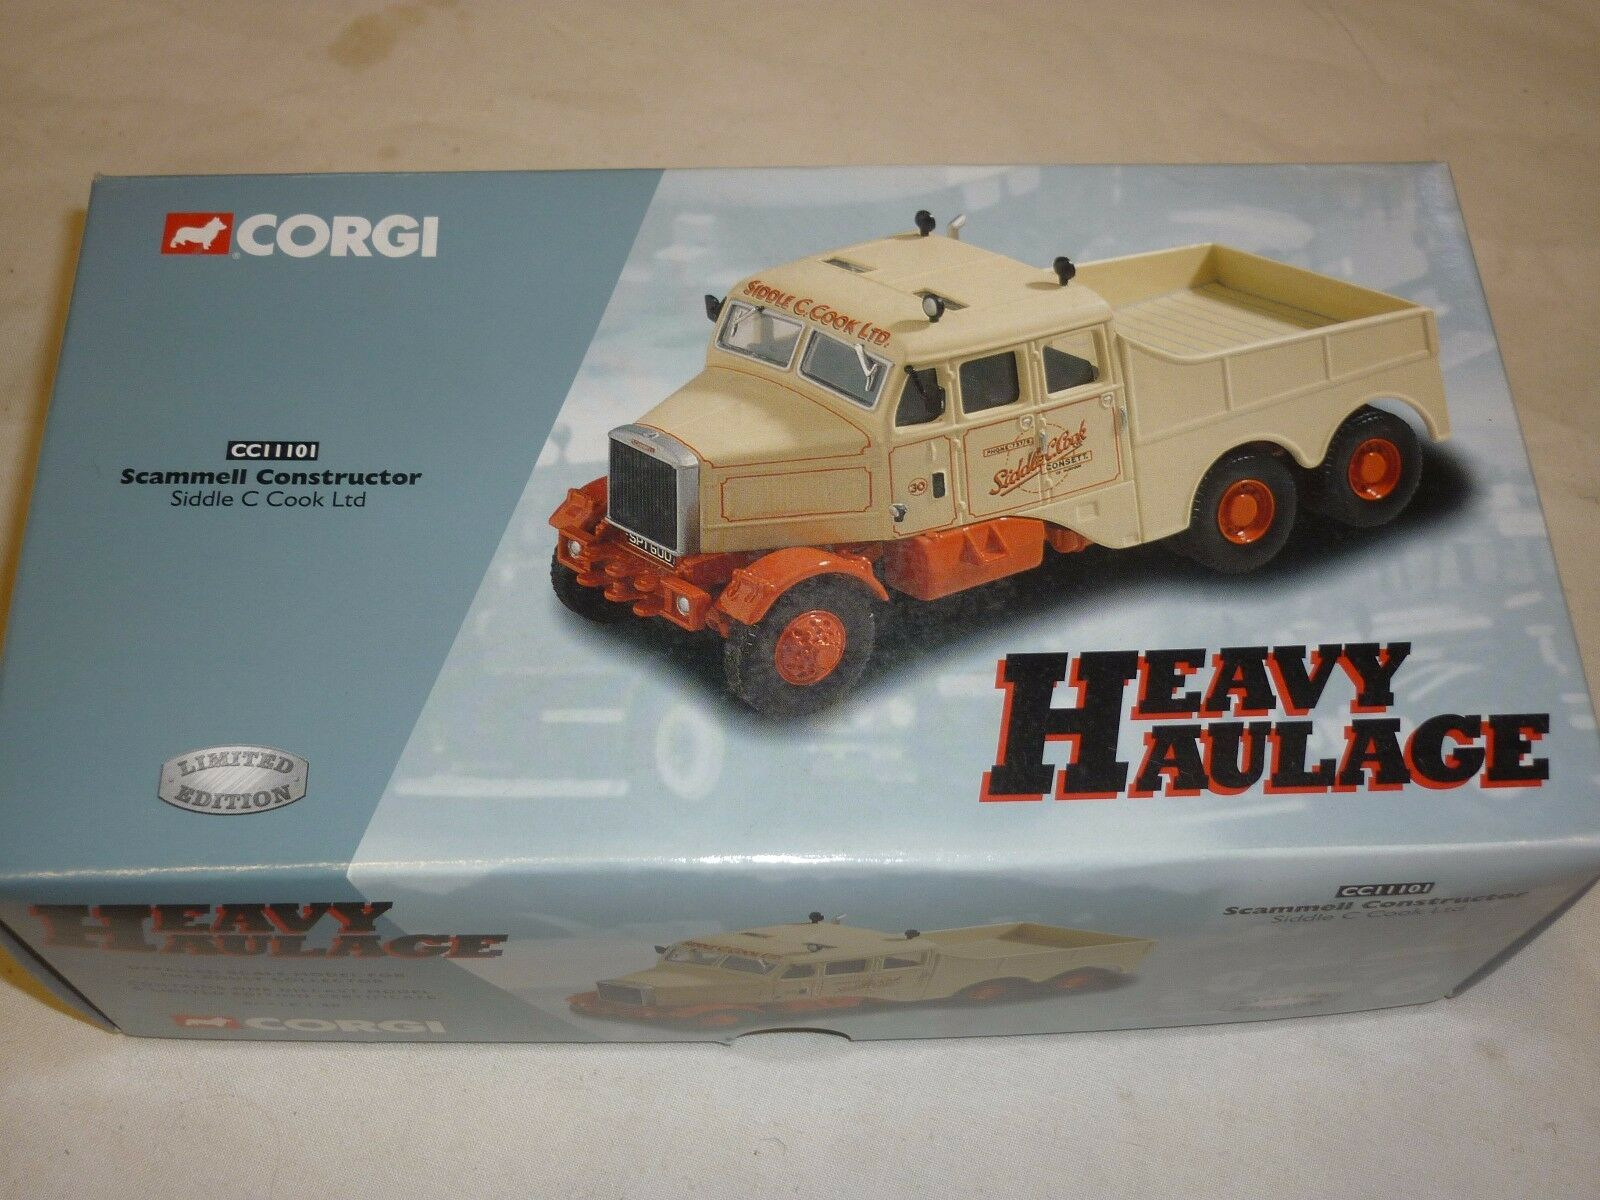 A Corgi  cc 11101 Scammell constructor, Siddle C Cook., Boxed